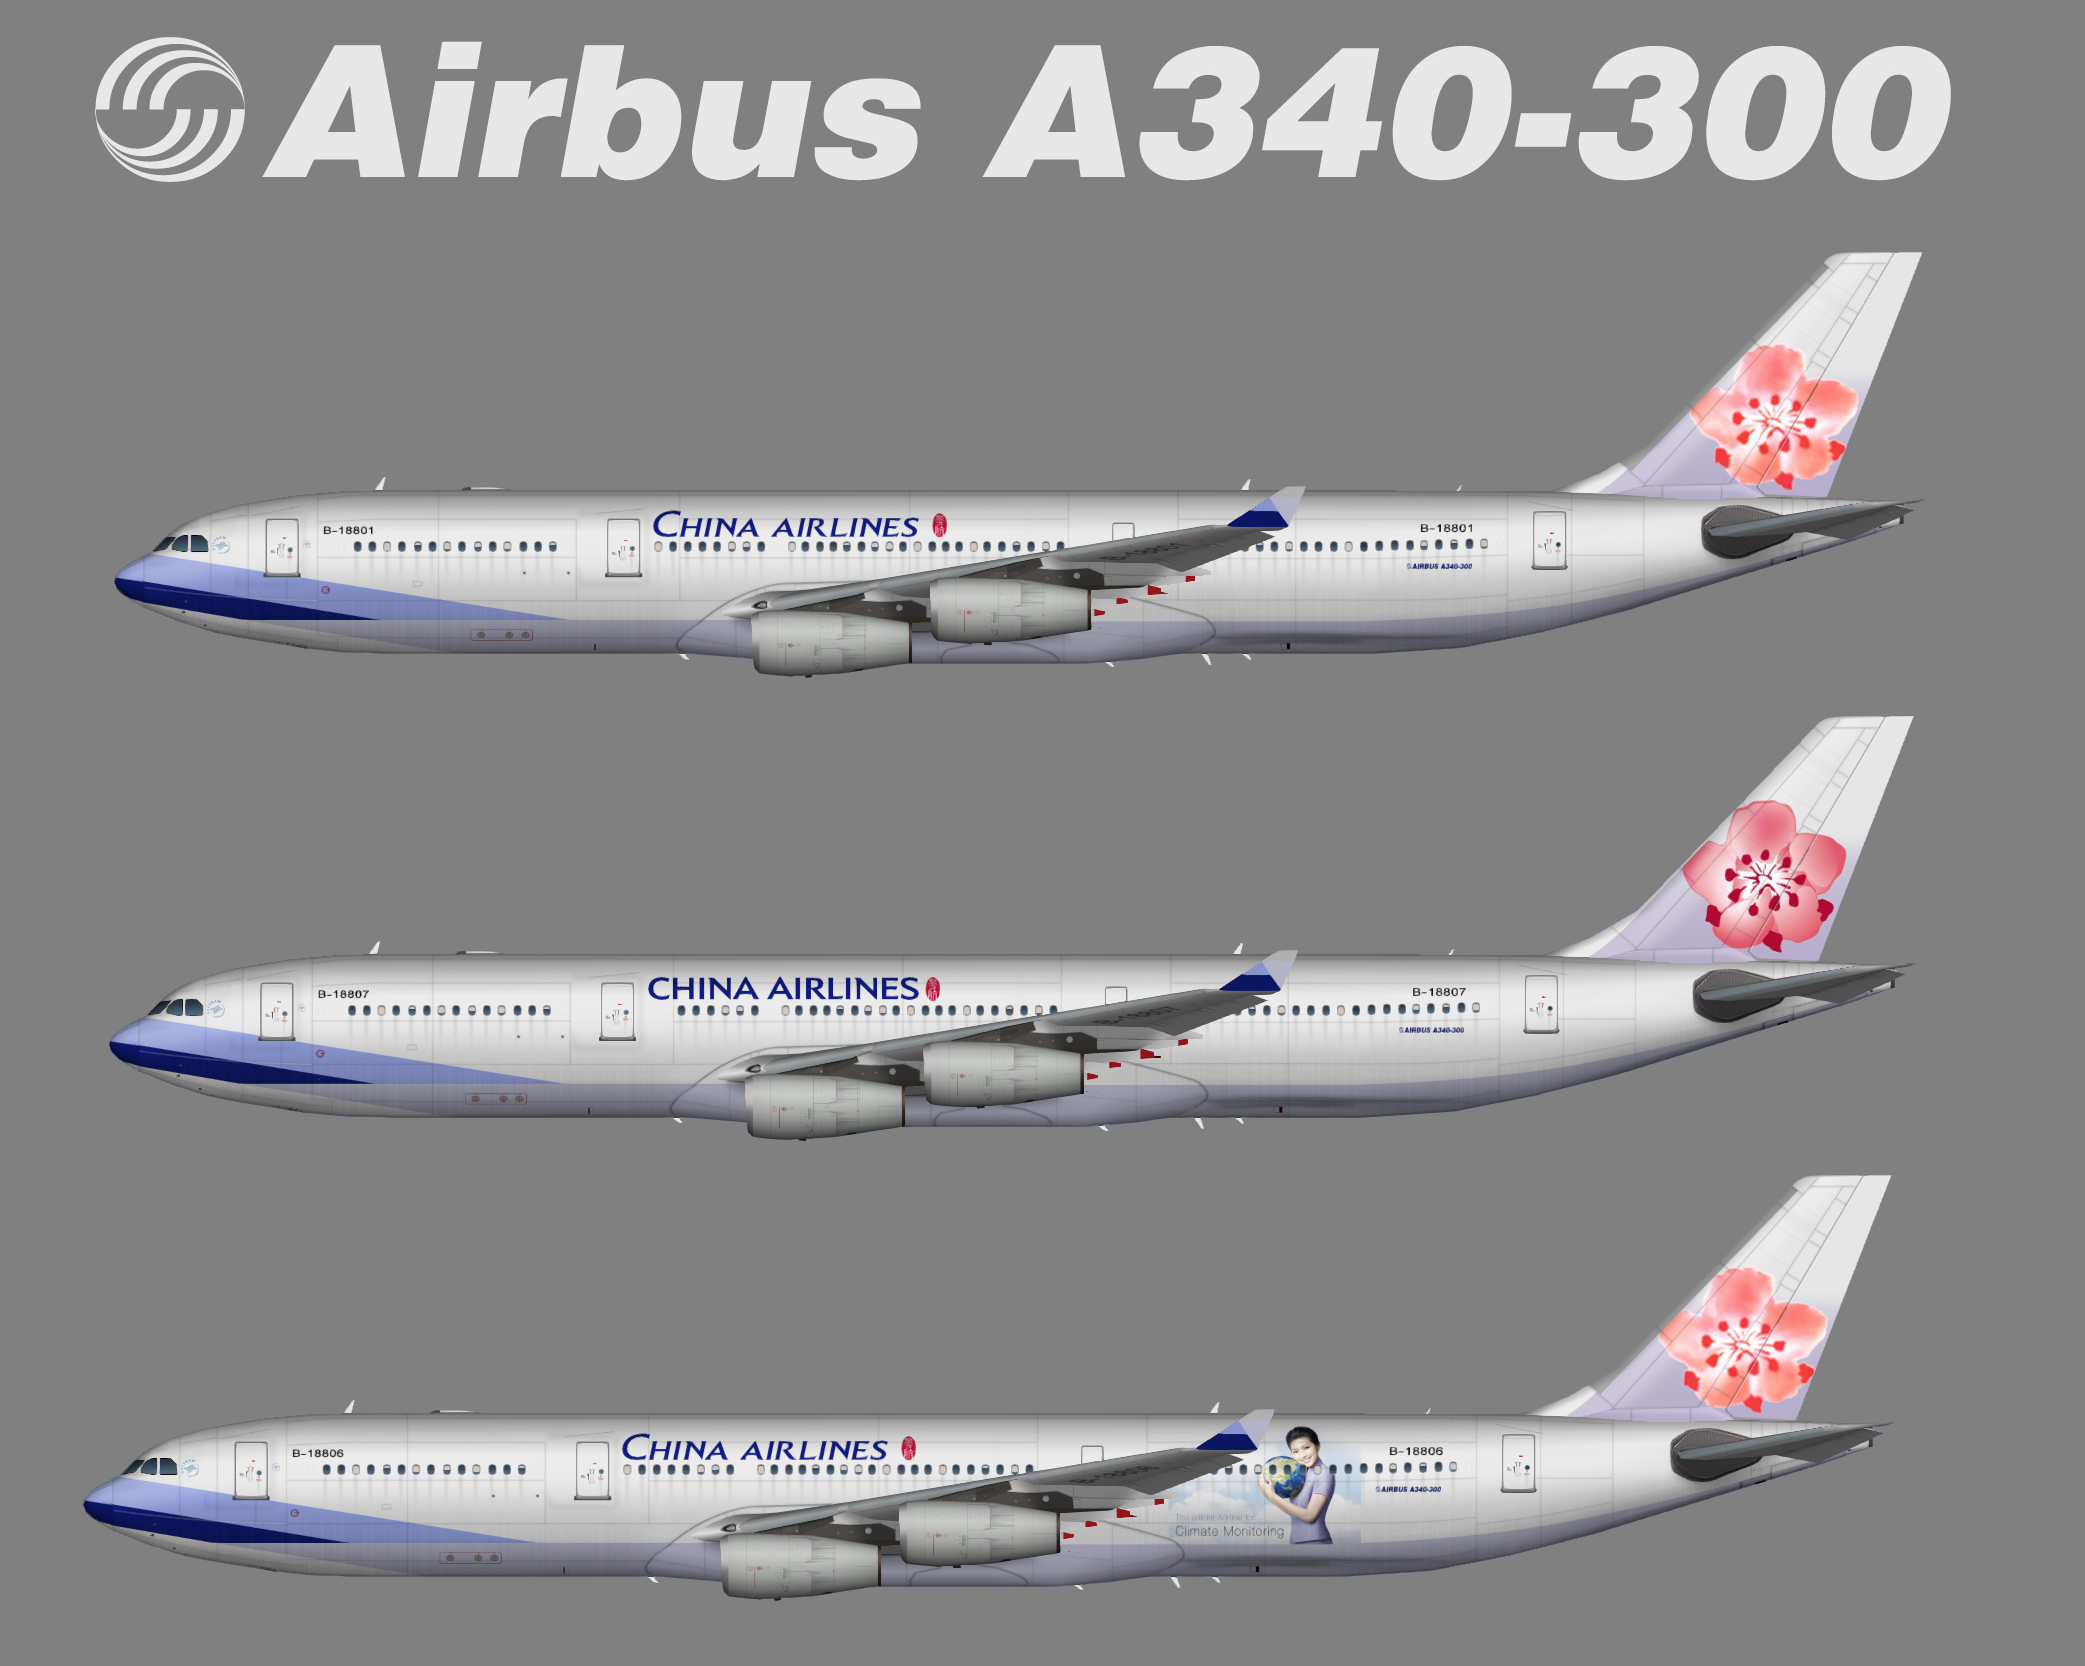 China Airlines Airbus A340-300 – Juergen's paint hangar